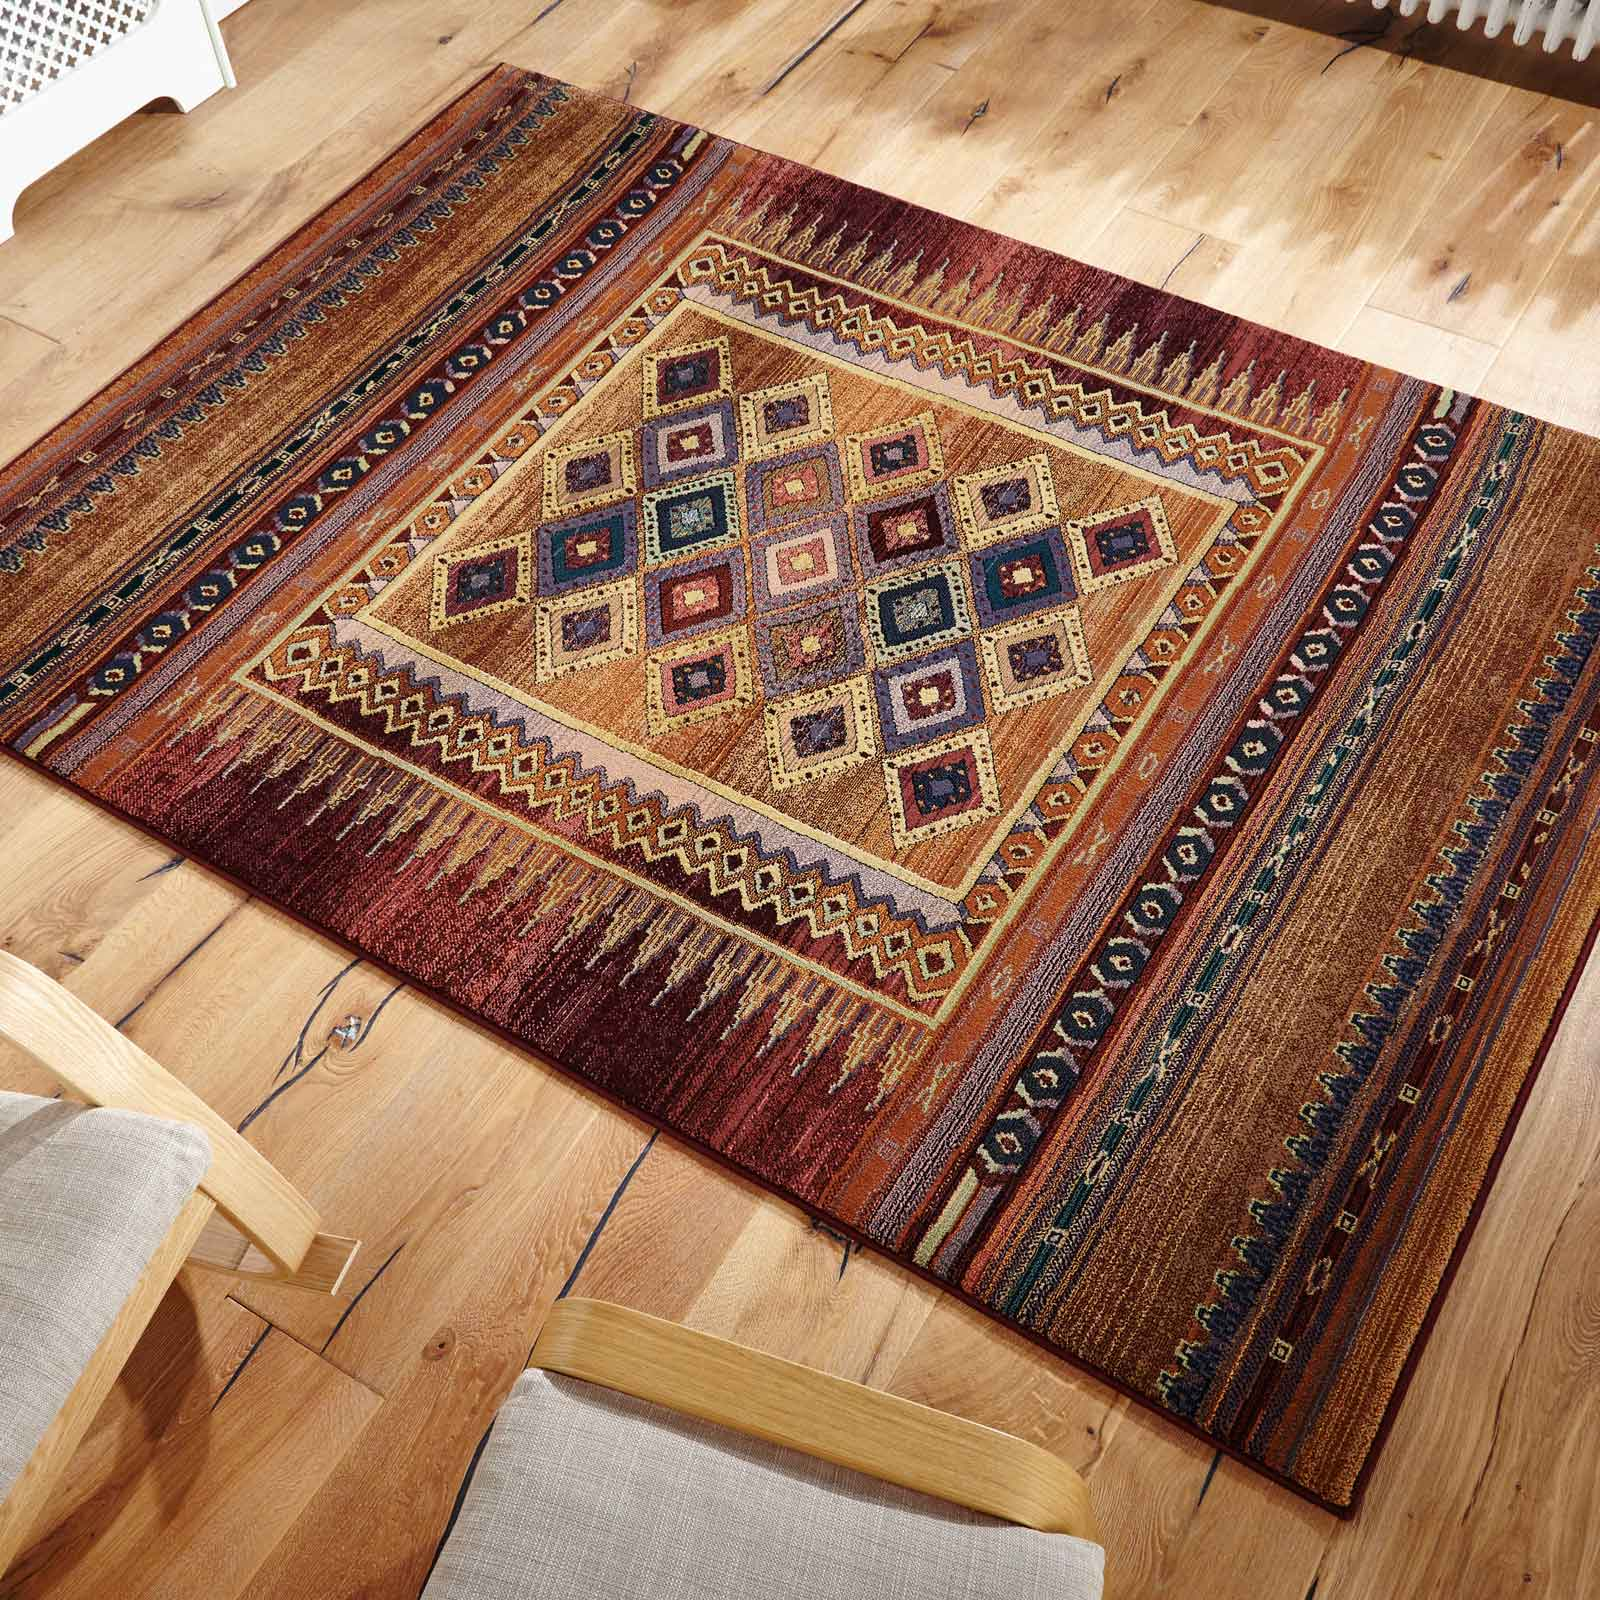 Gabbeh Rugs Buy Online For Huge Savings